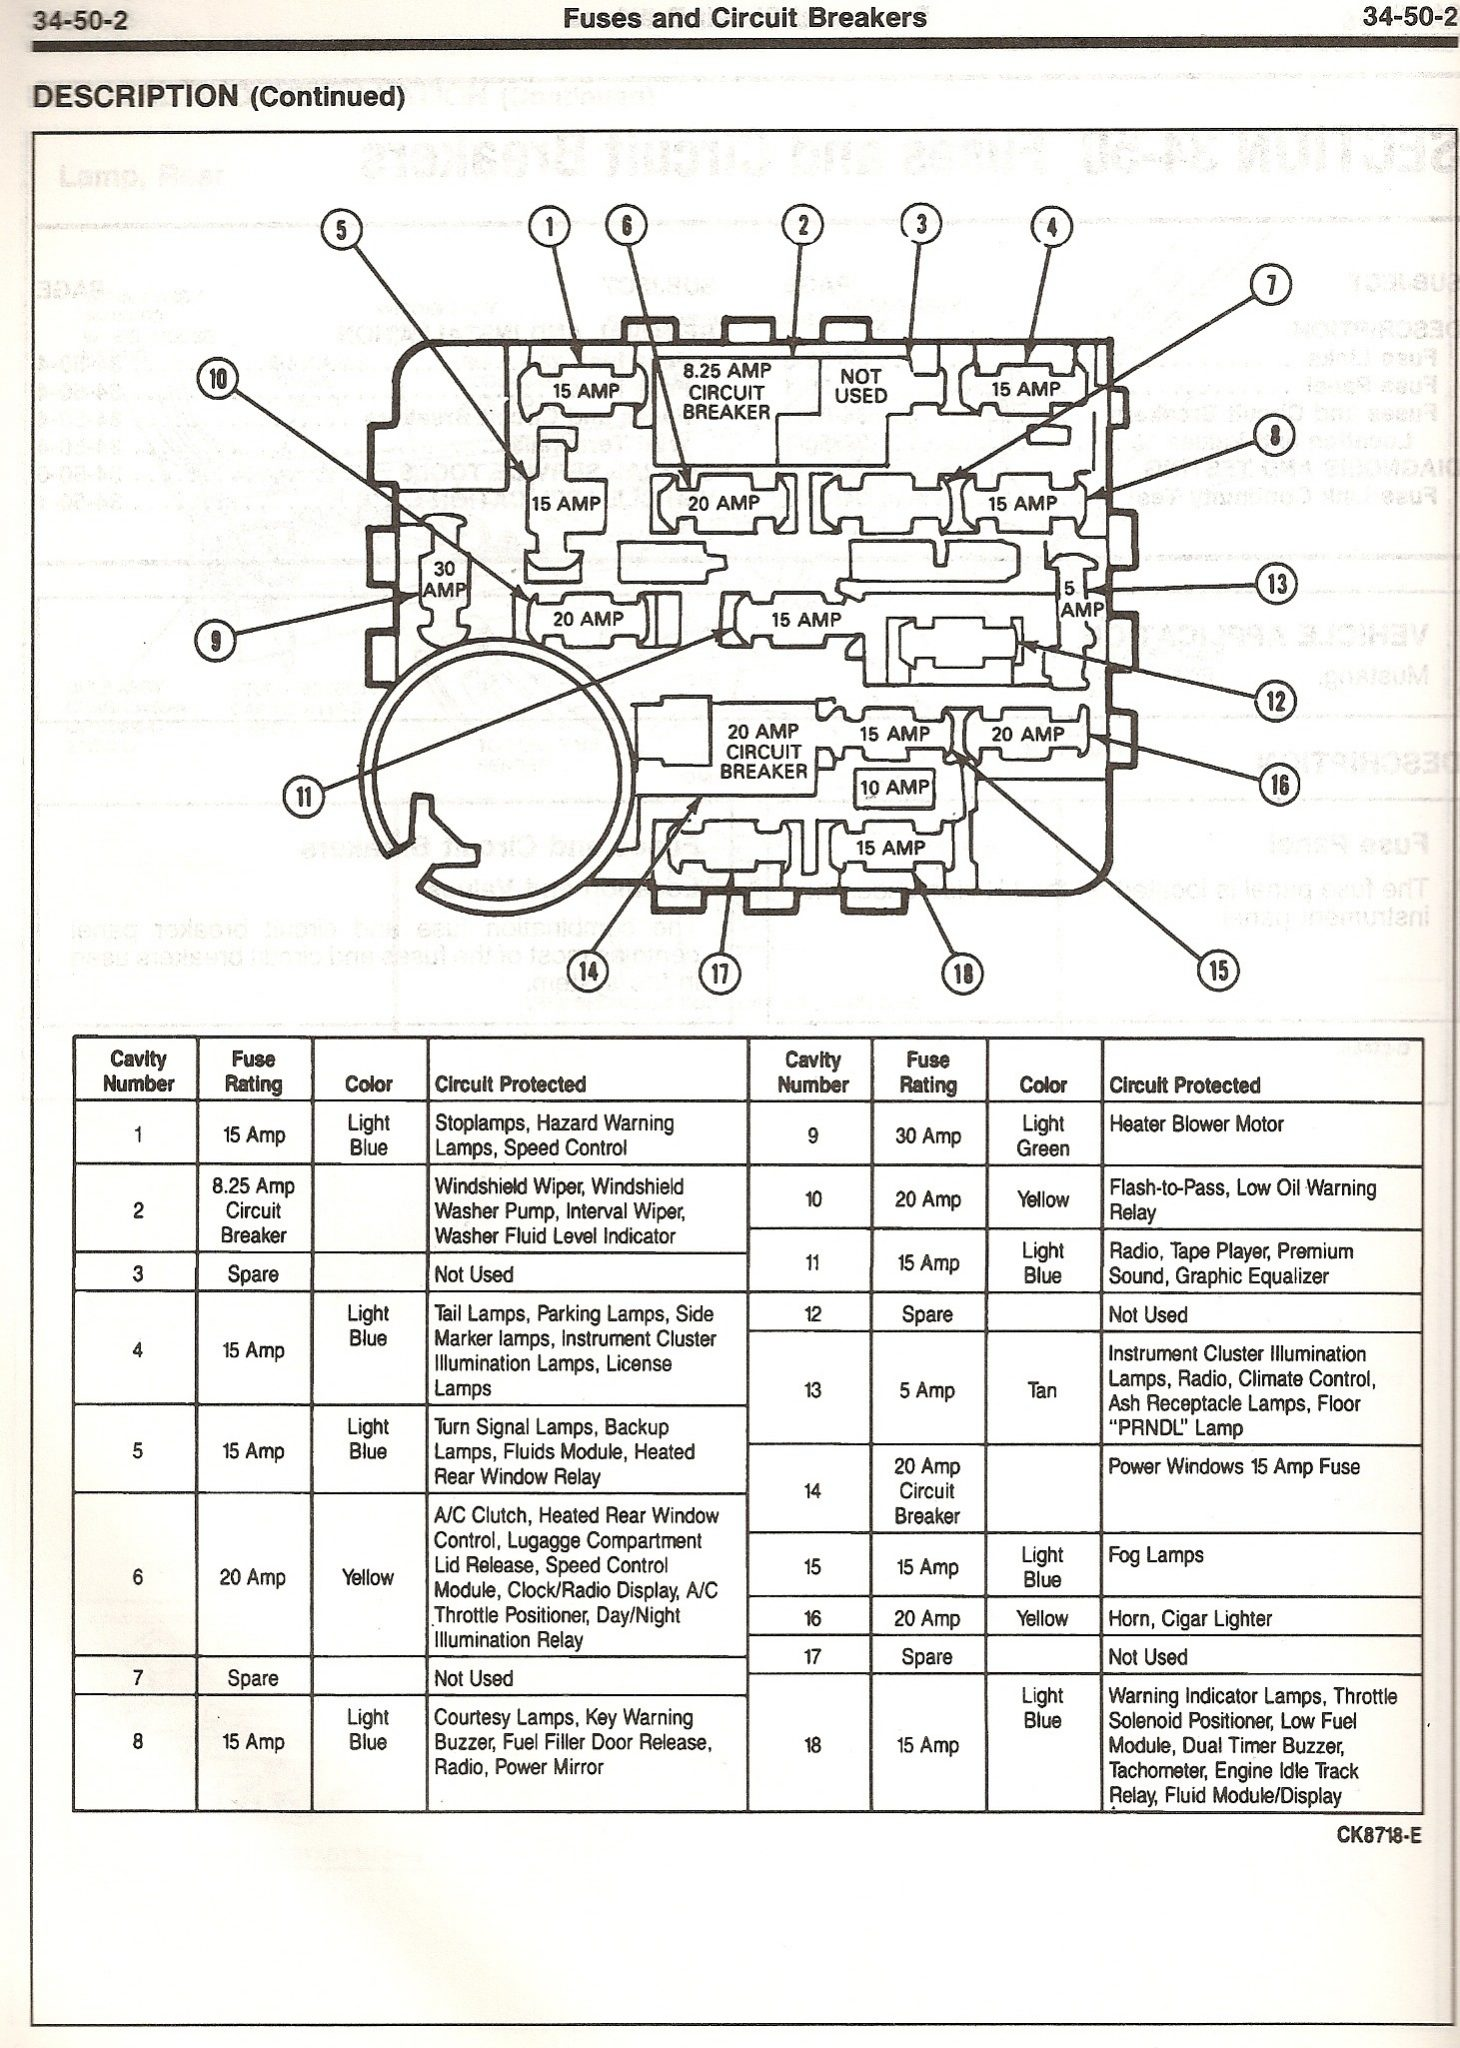 Wiring Diagram: 12 2000 Mustang Gt Belt Diagram